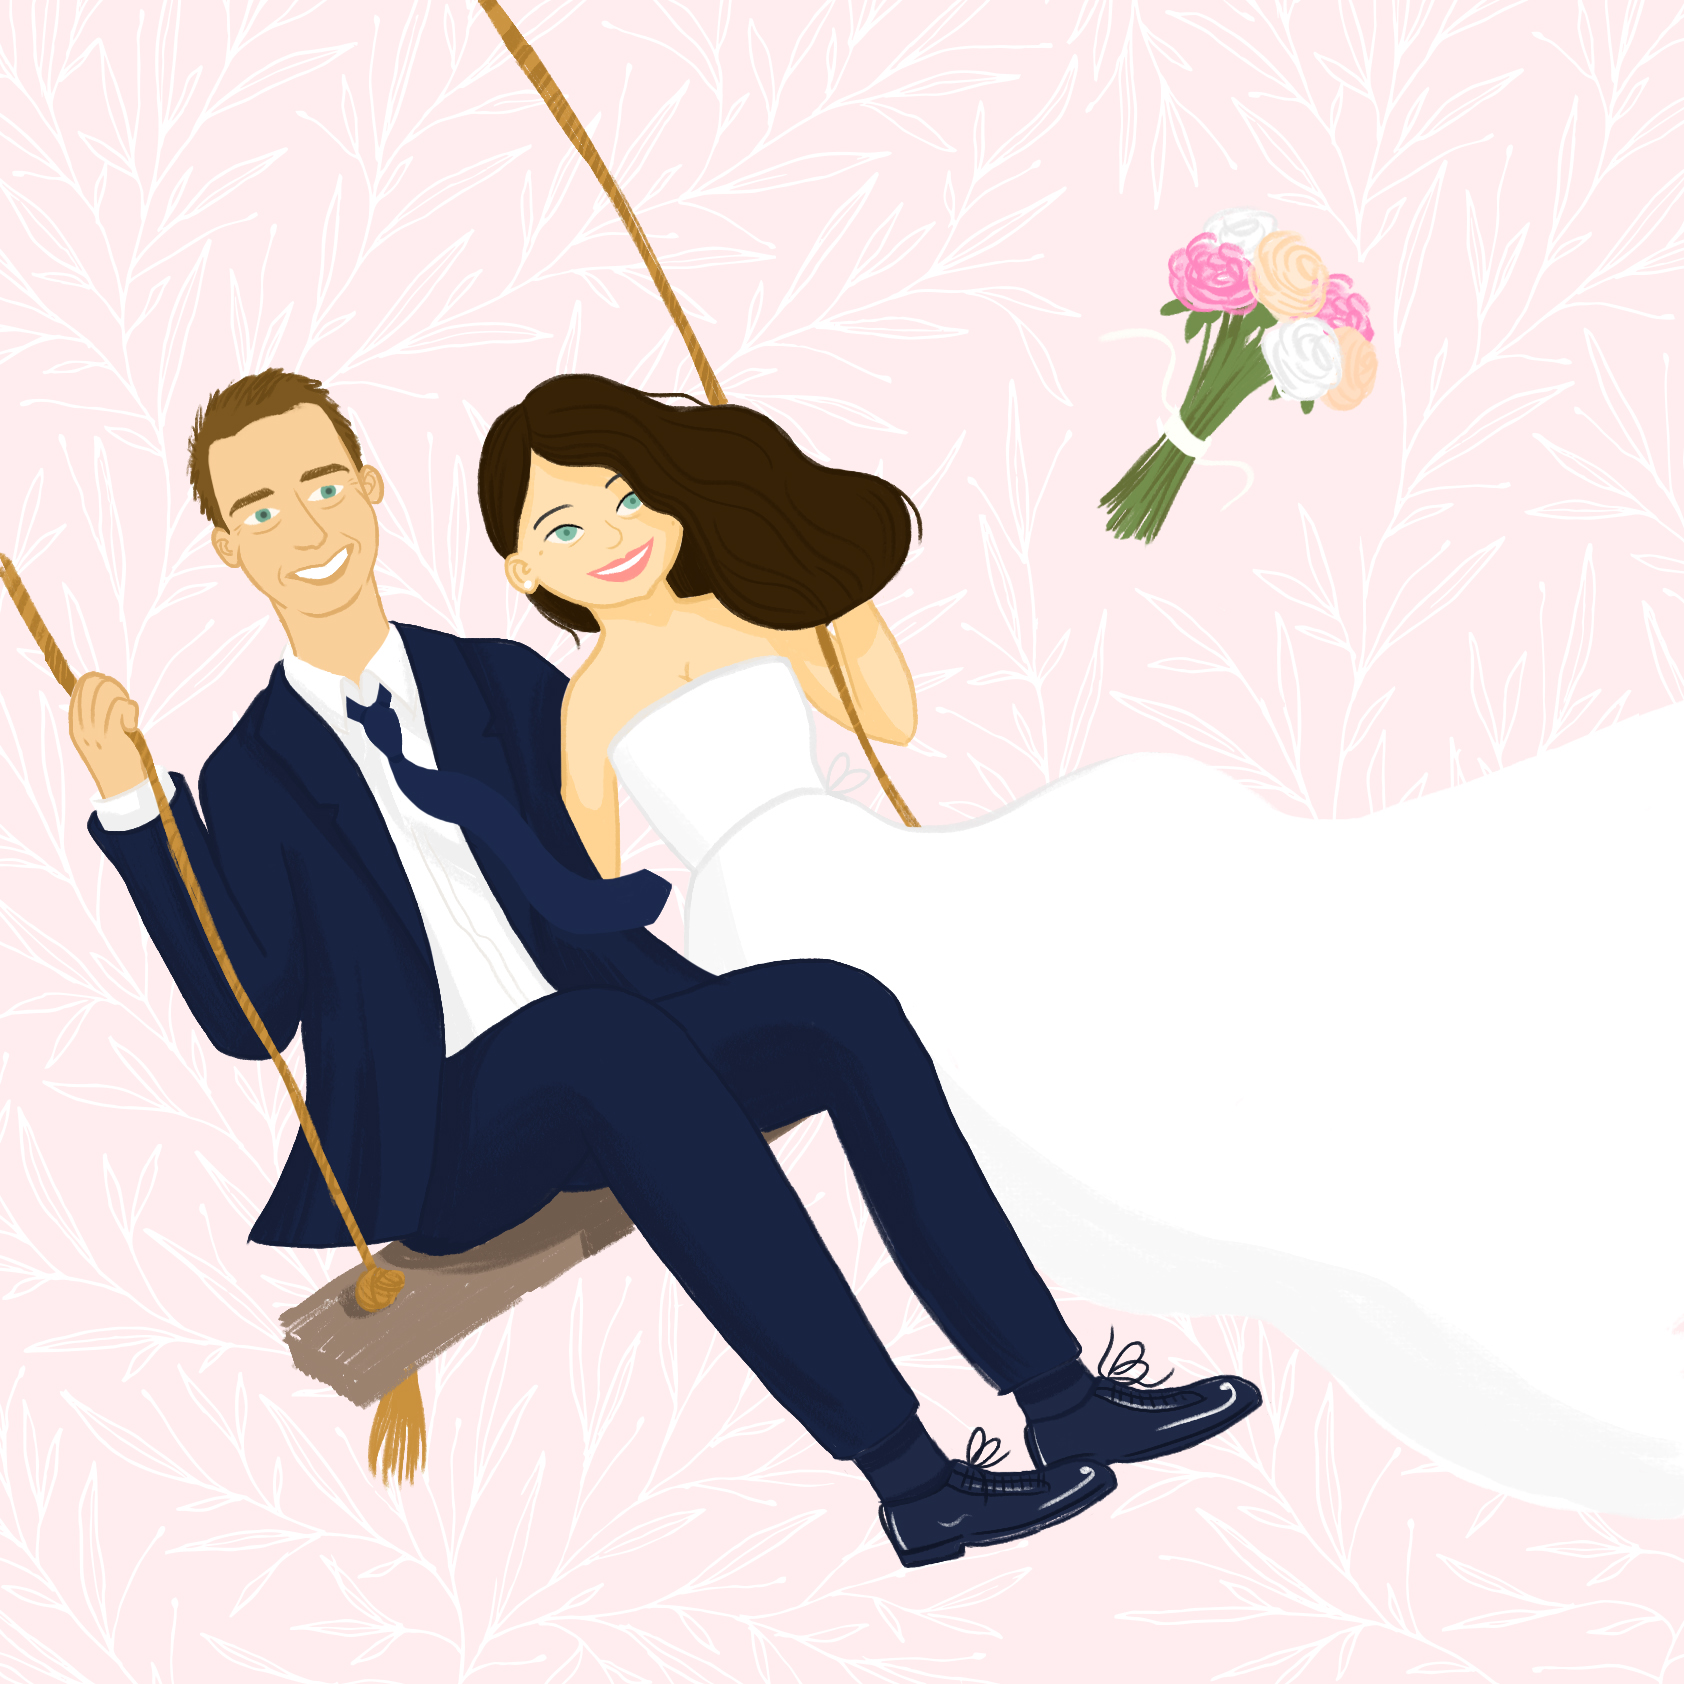 WEDDING ILLUSTRATIONS